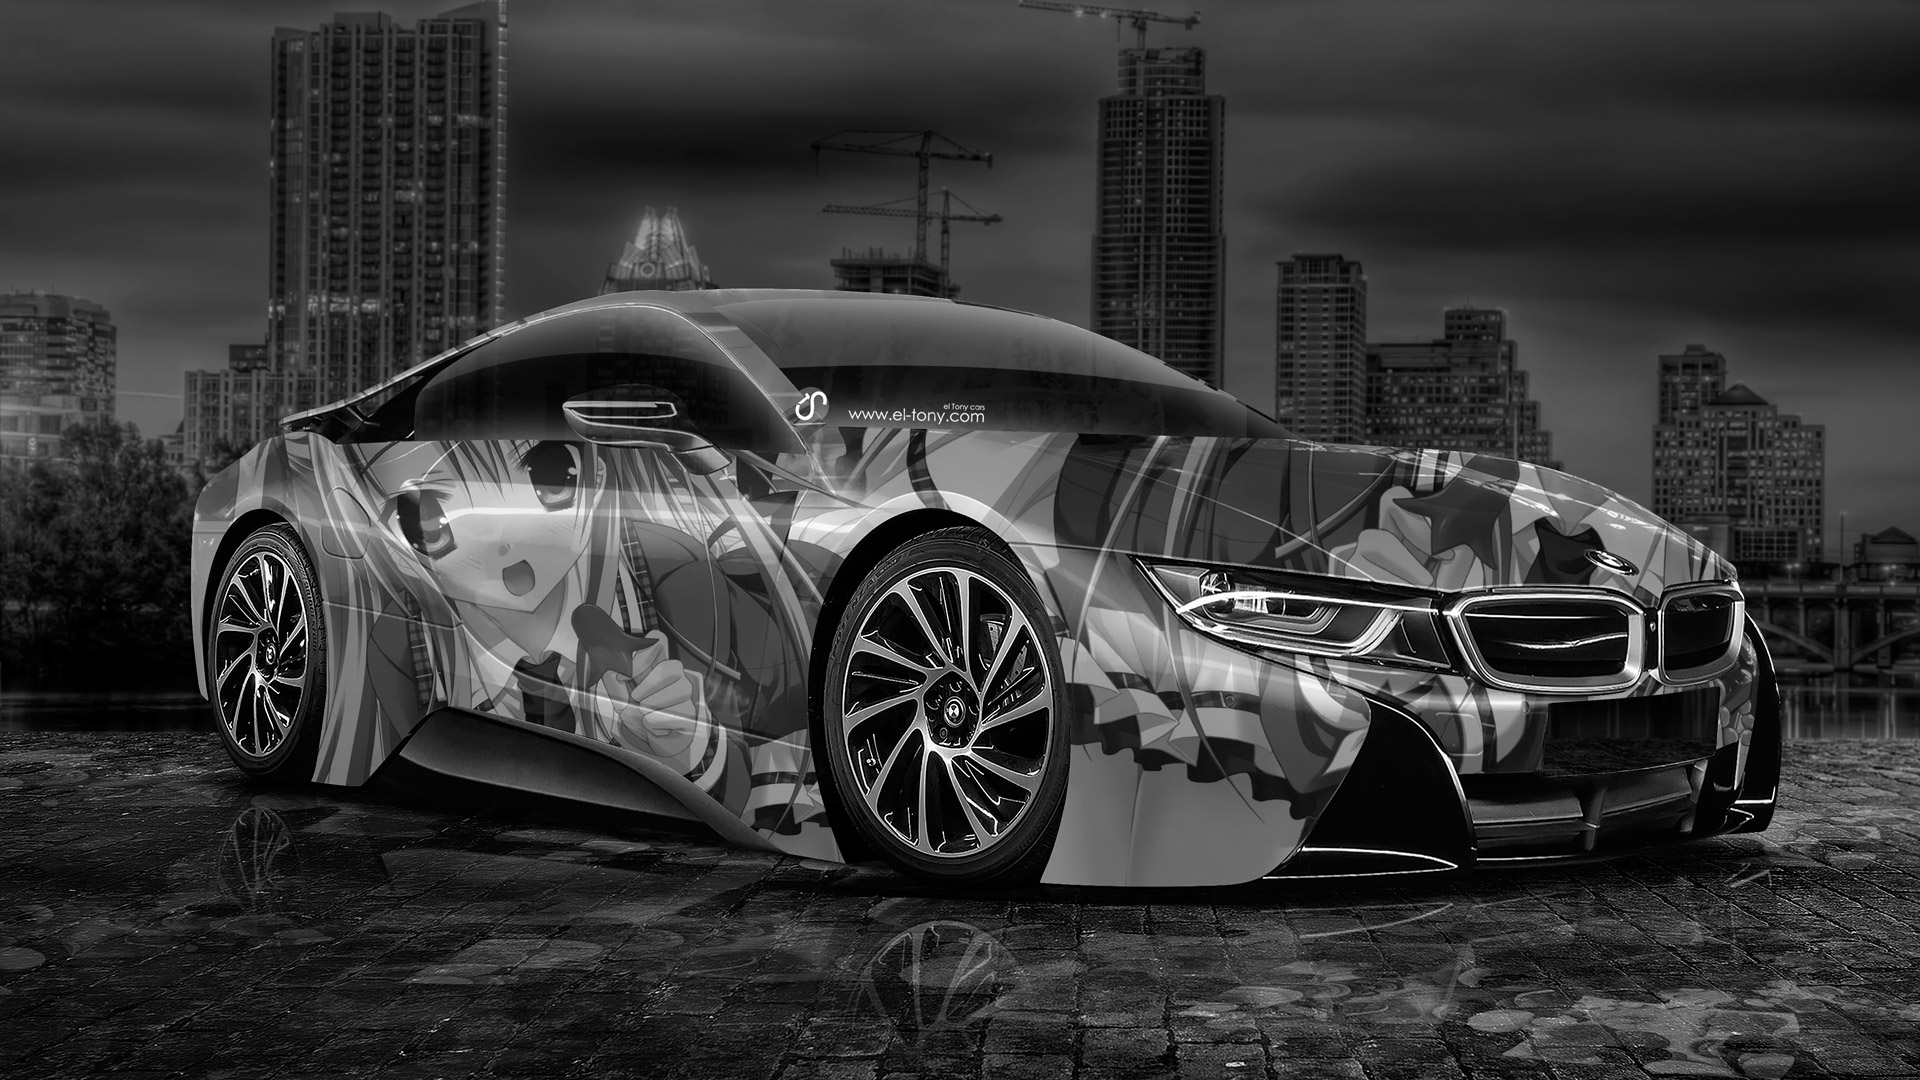 BMW i8 Anime Aerography City Car 2014 el Tony